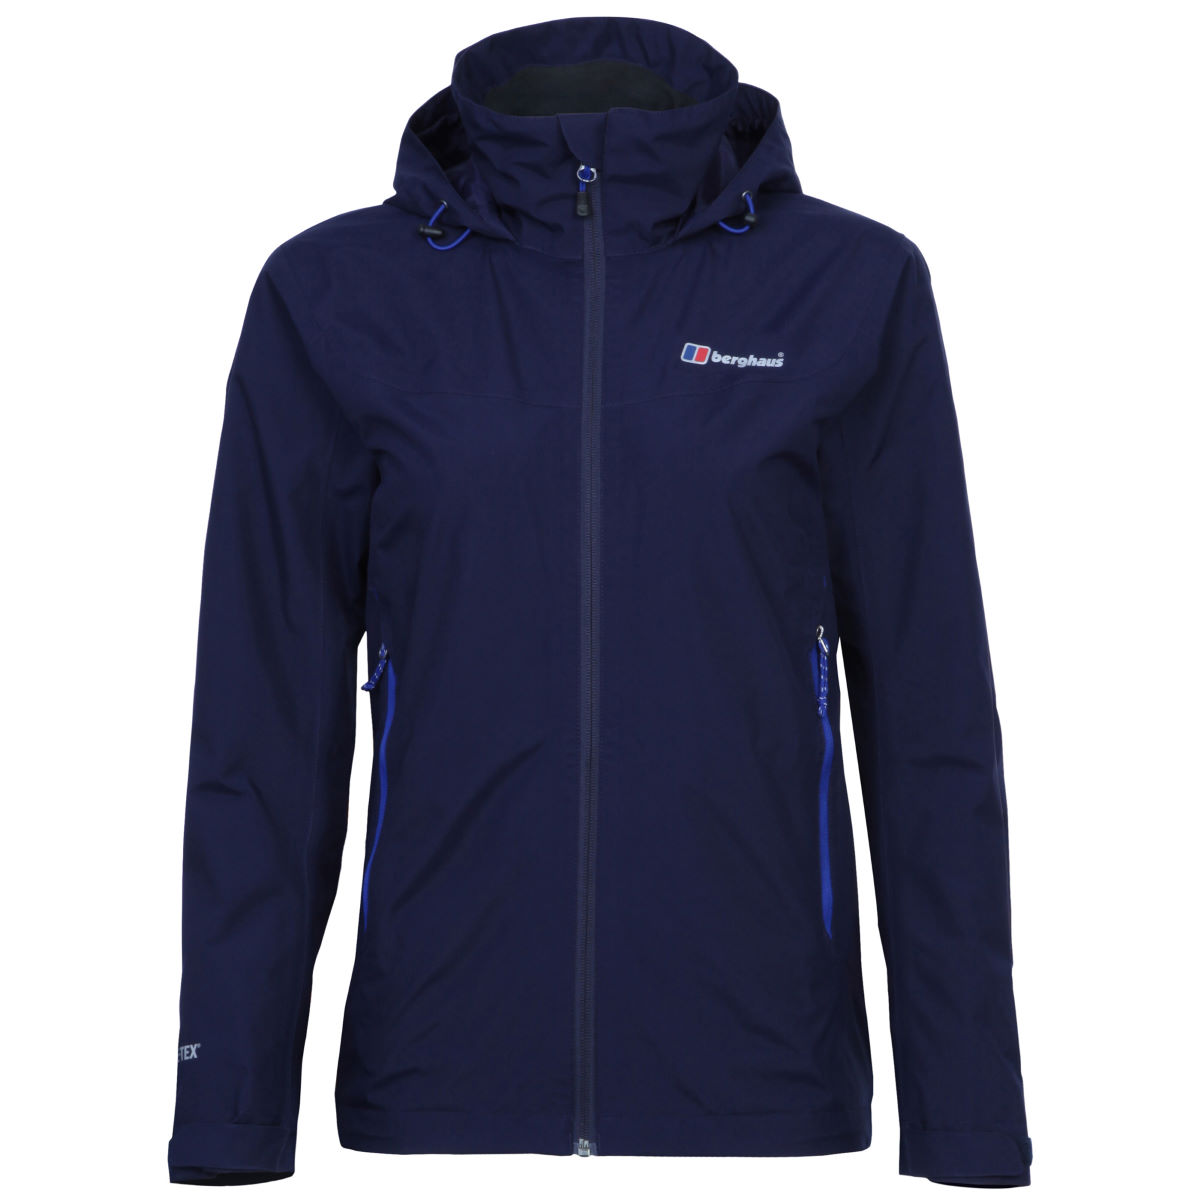 Berghaus Womens Thunder Jacket   Waterproof Jackets